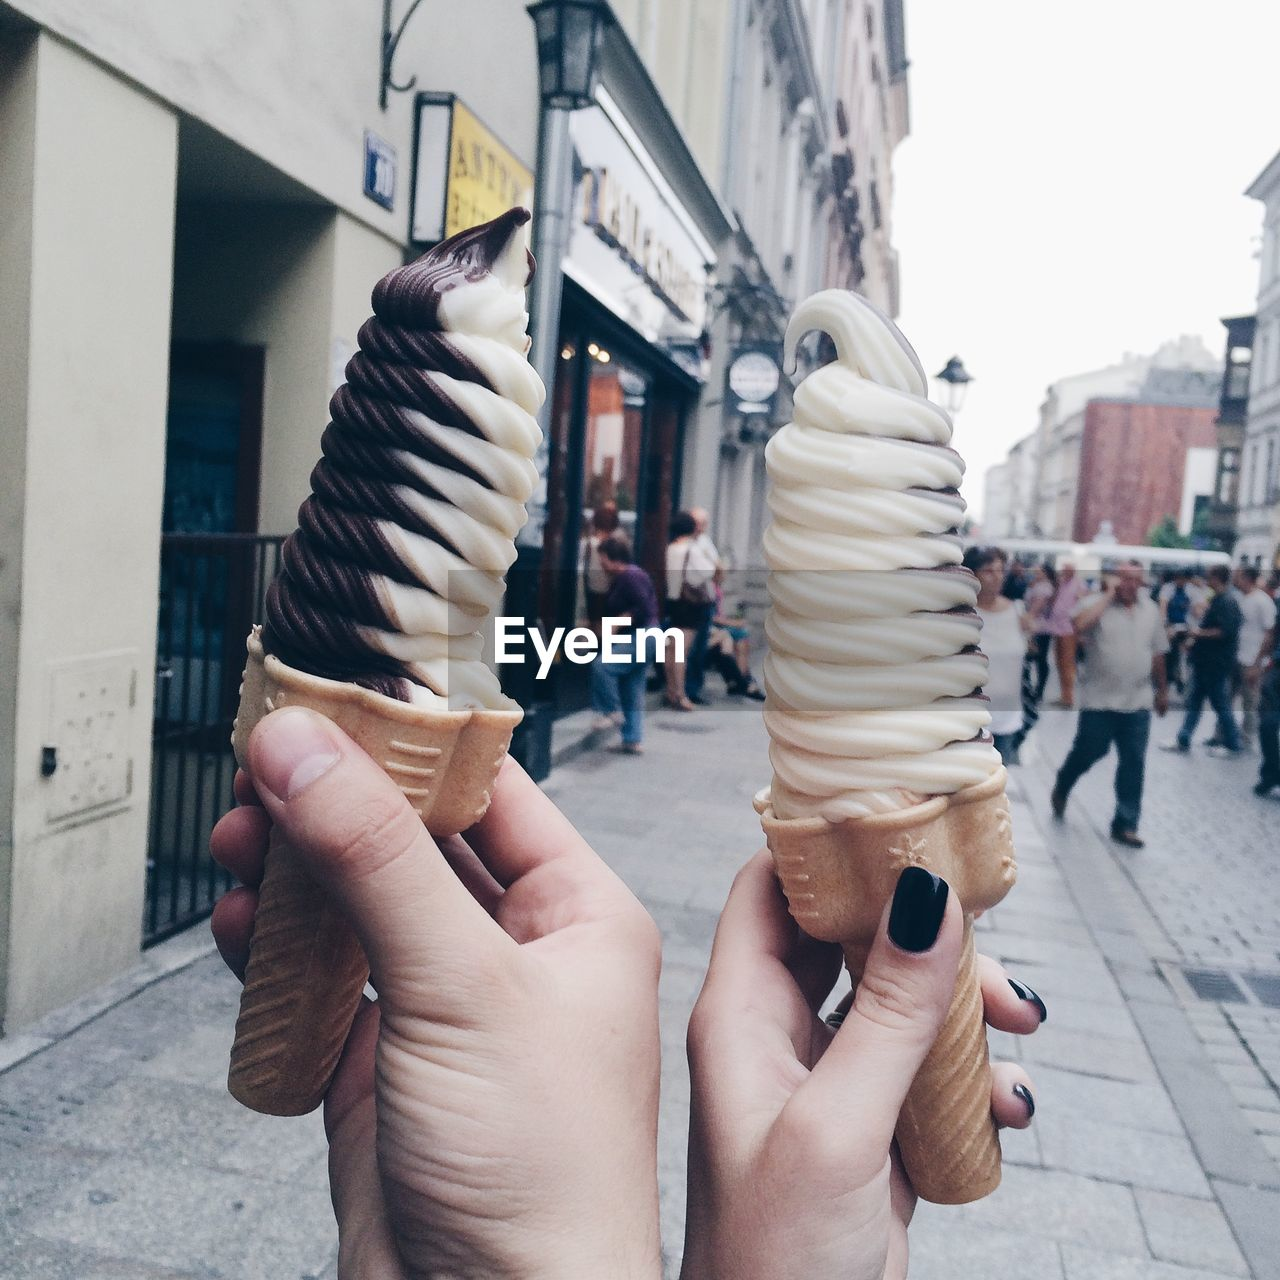 Cropped Hands Holding Swirled Ice Cream Cone Against Buildings